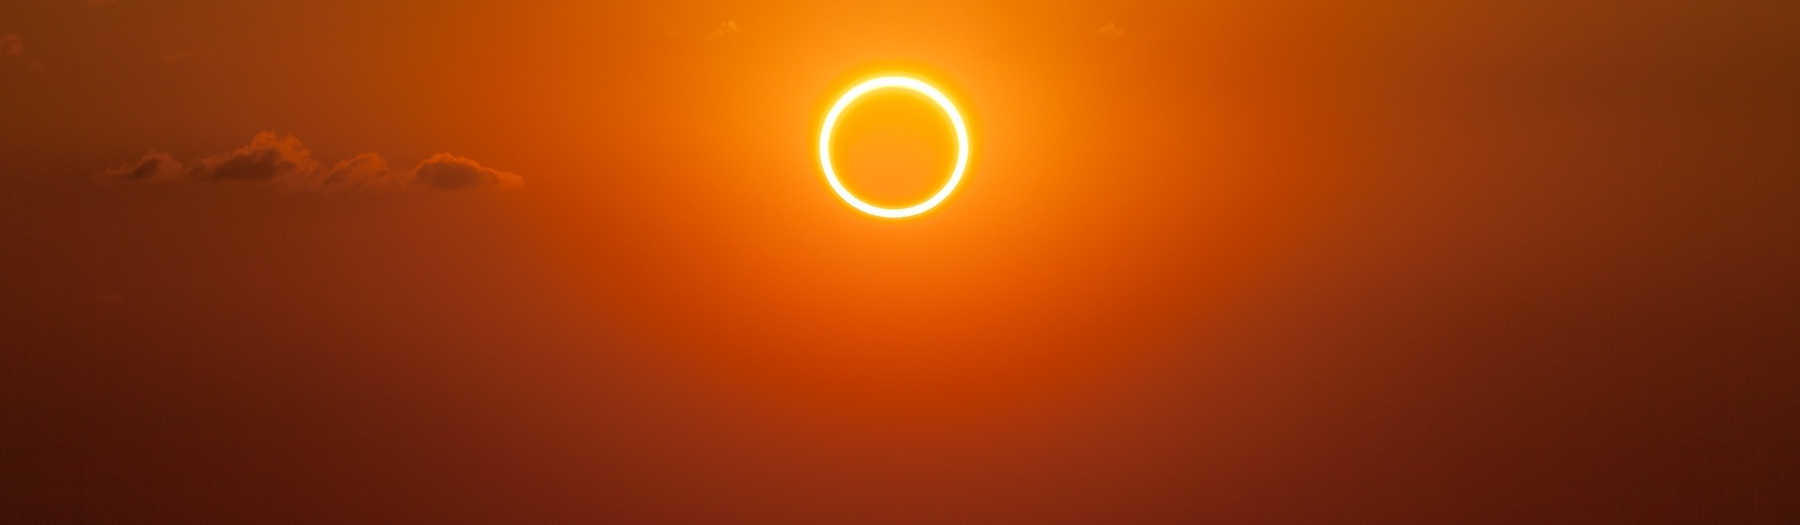 a solar eclipse in the sky